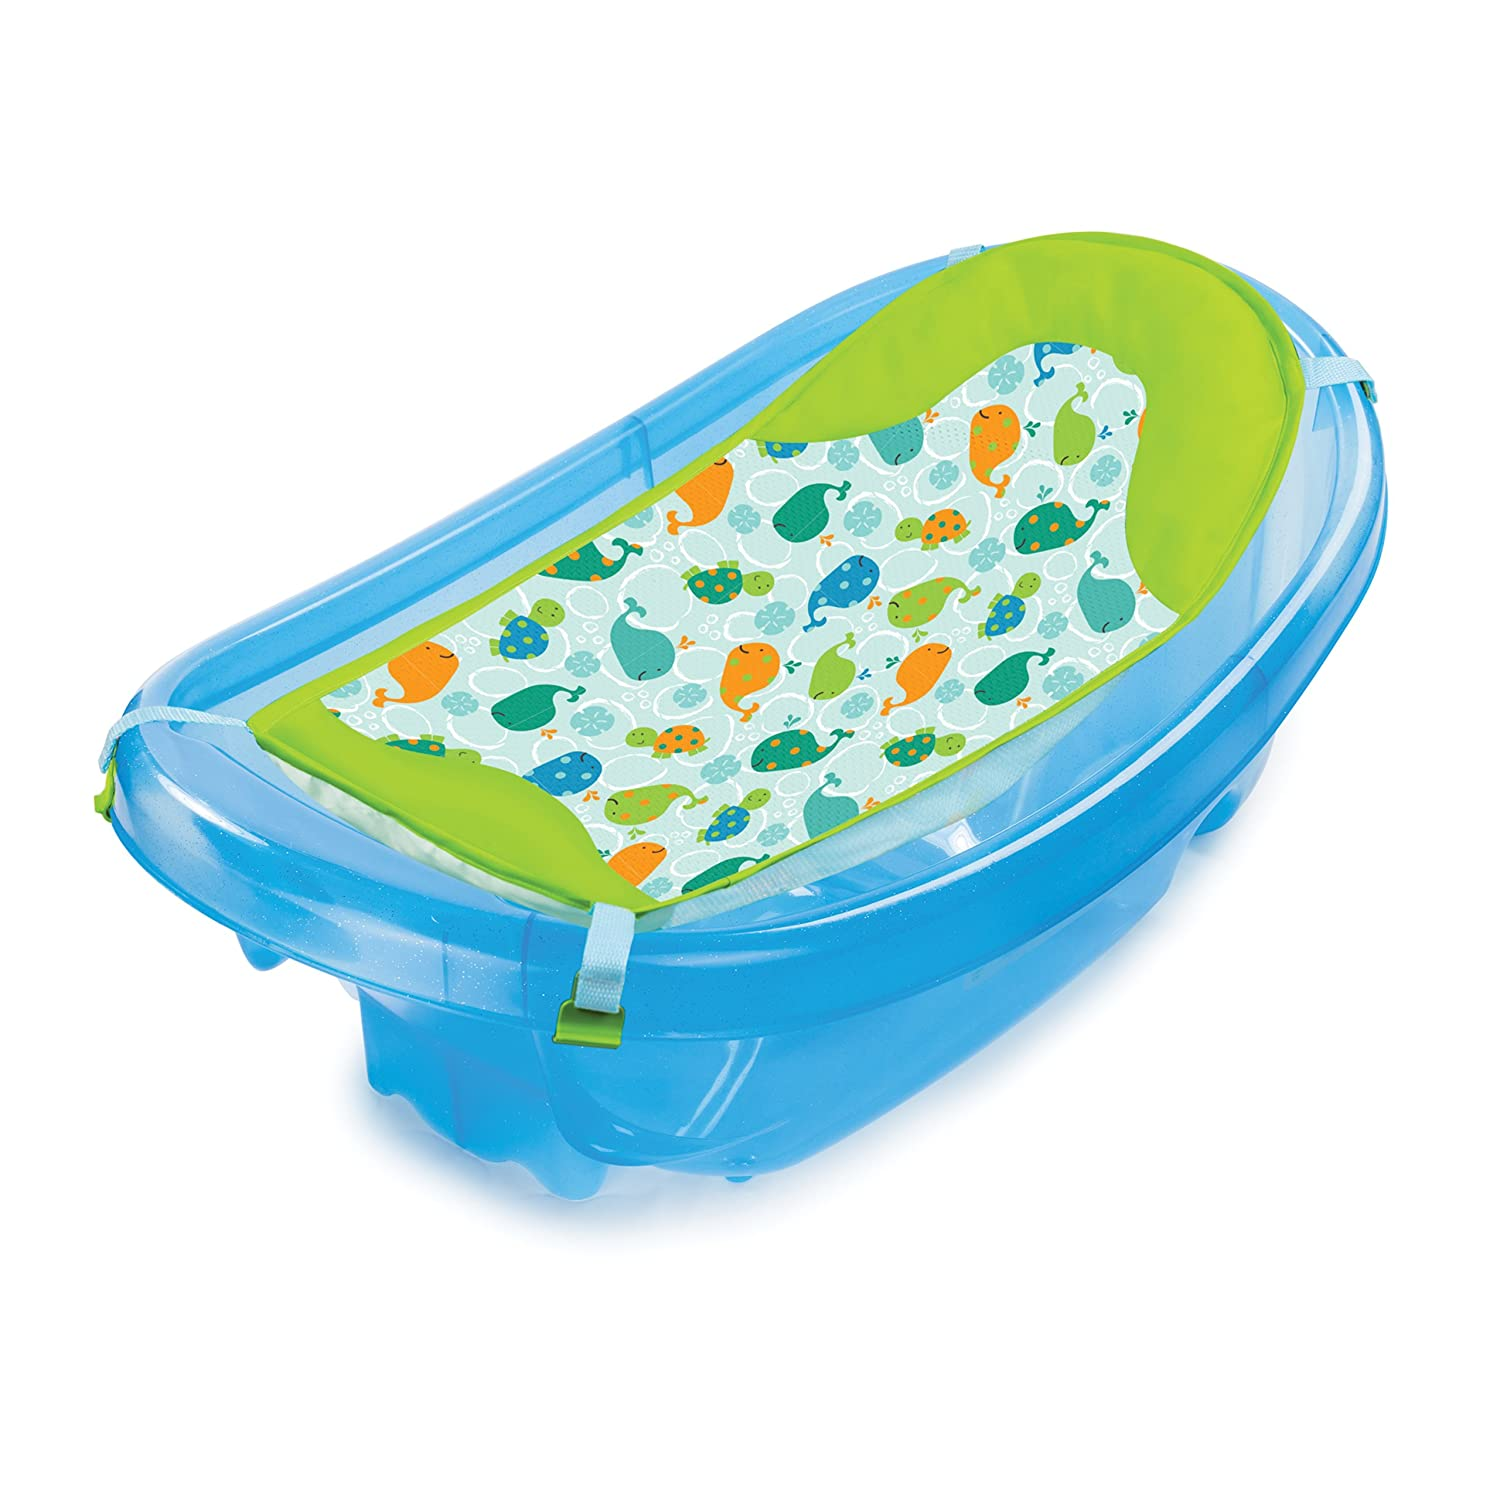 Summer Infant Sparkle and Splash Tub (Blue) (Old Model): Amazon.co ...